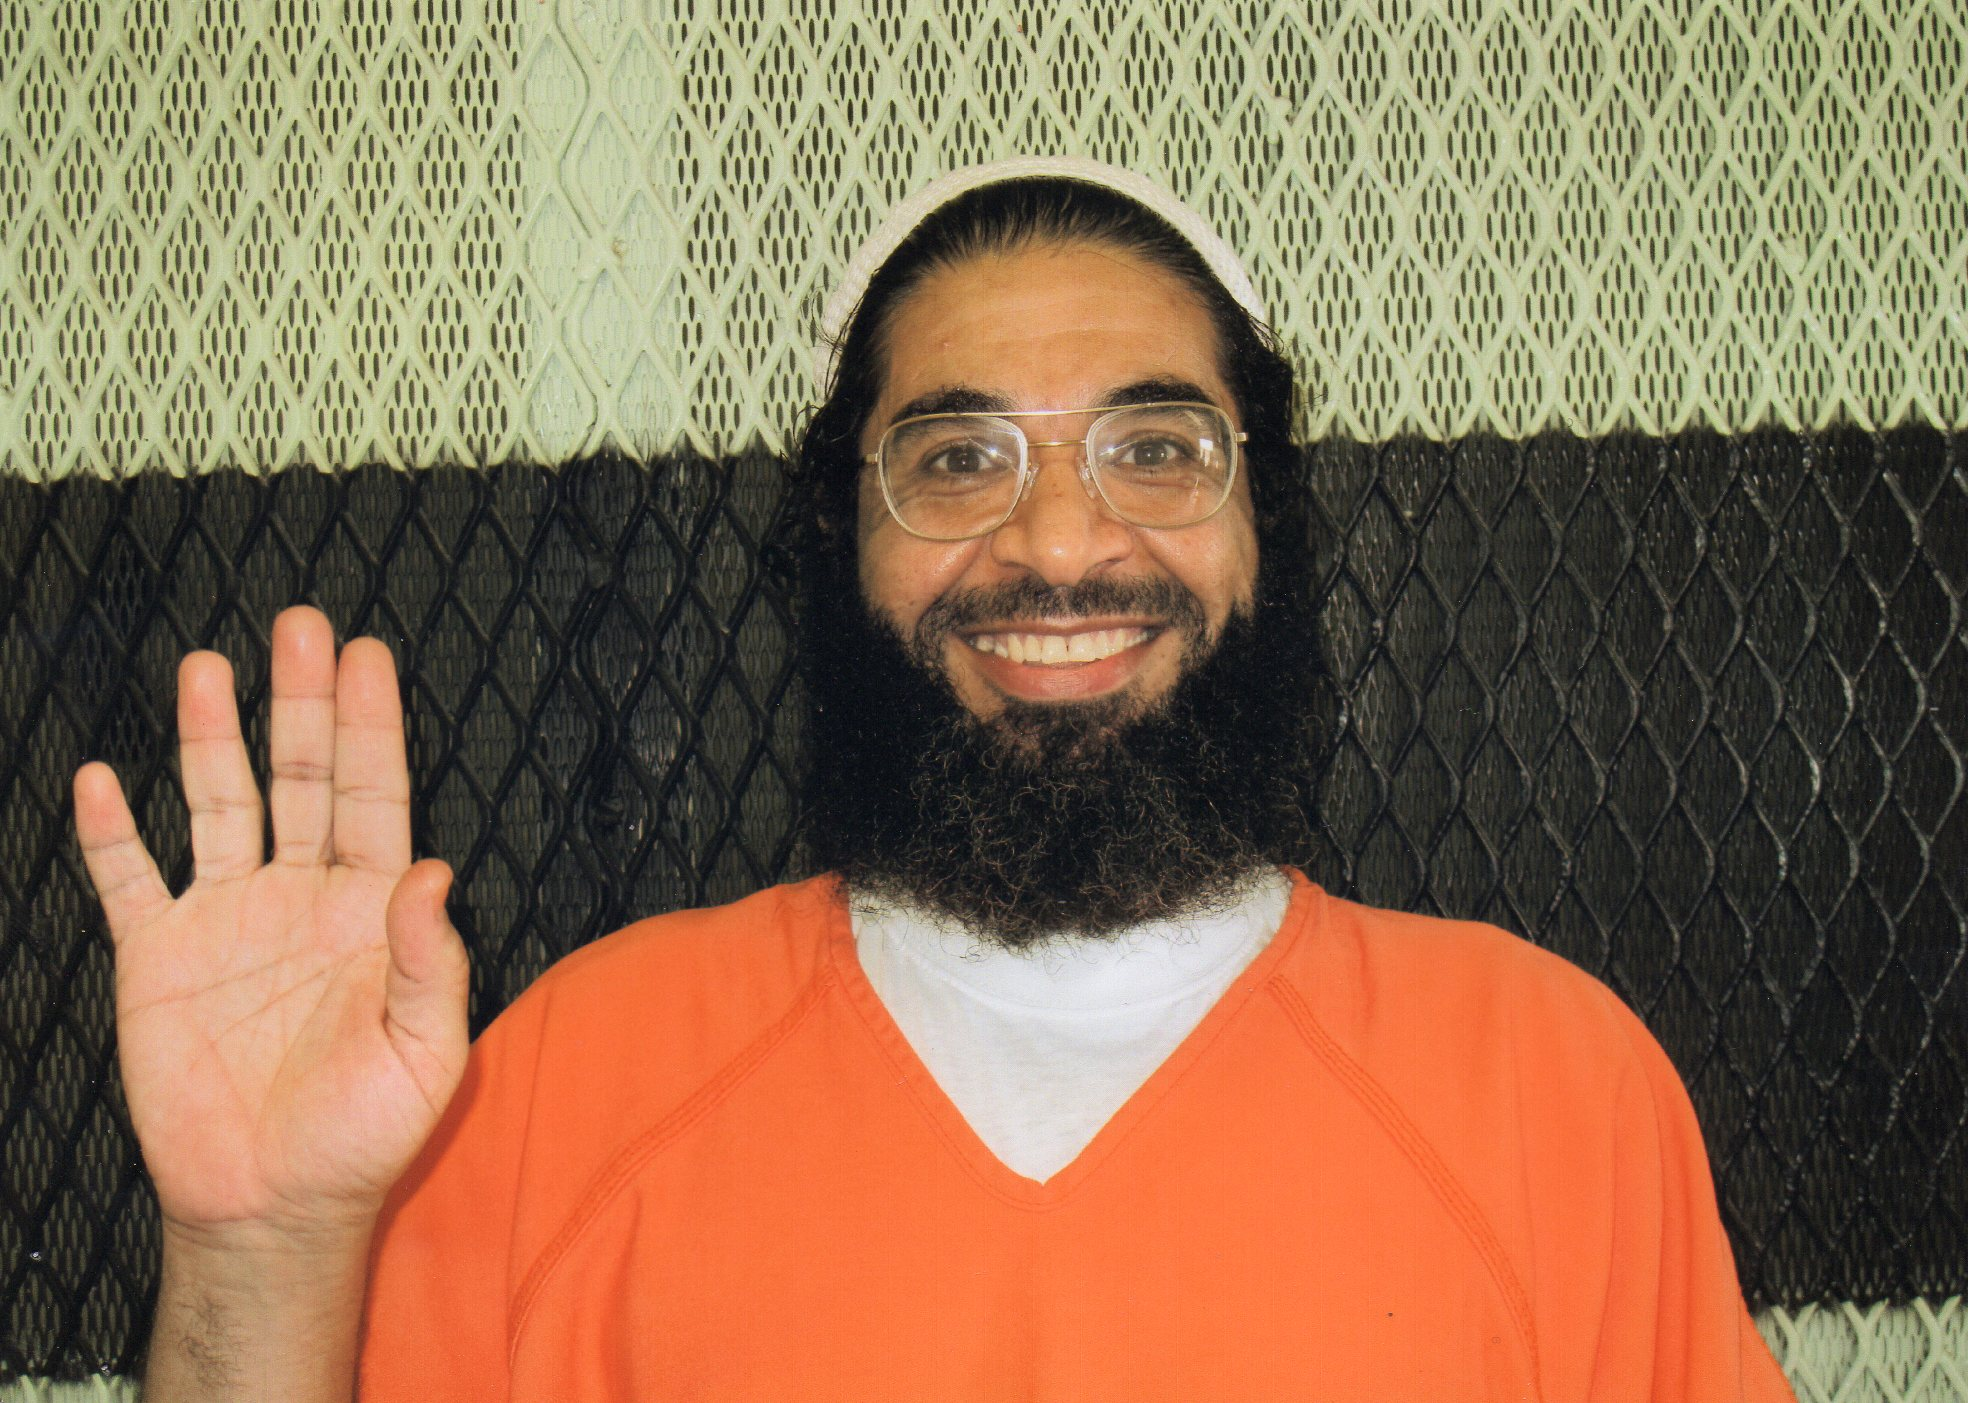 Shaker Aamer in a 2013 photo provided by the International Committee of the Red Cross.